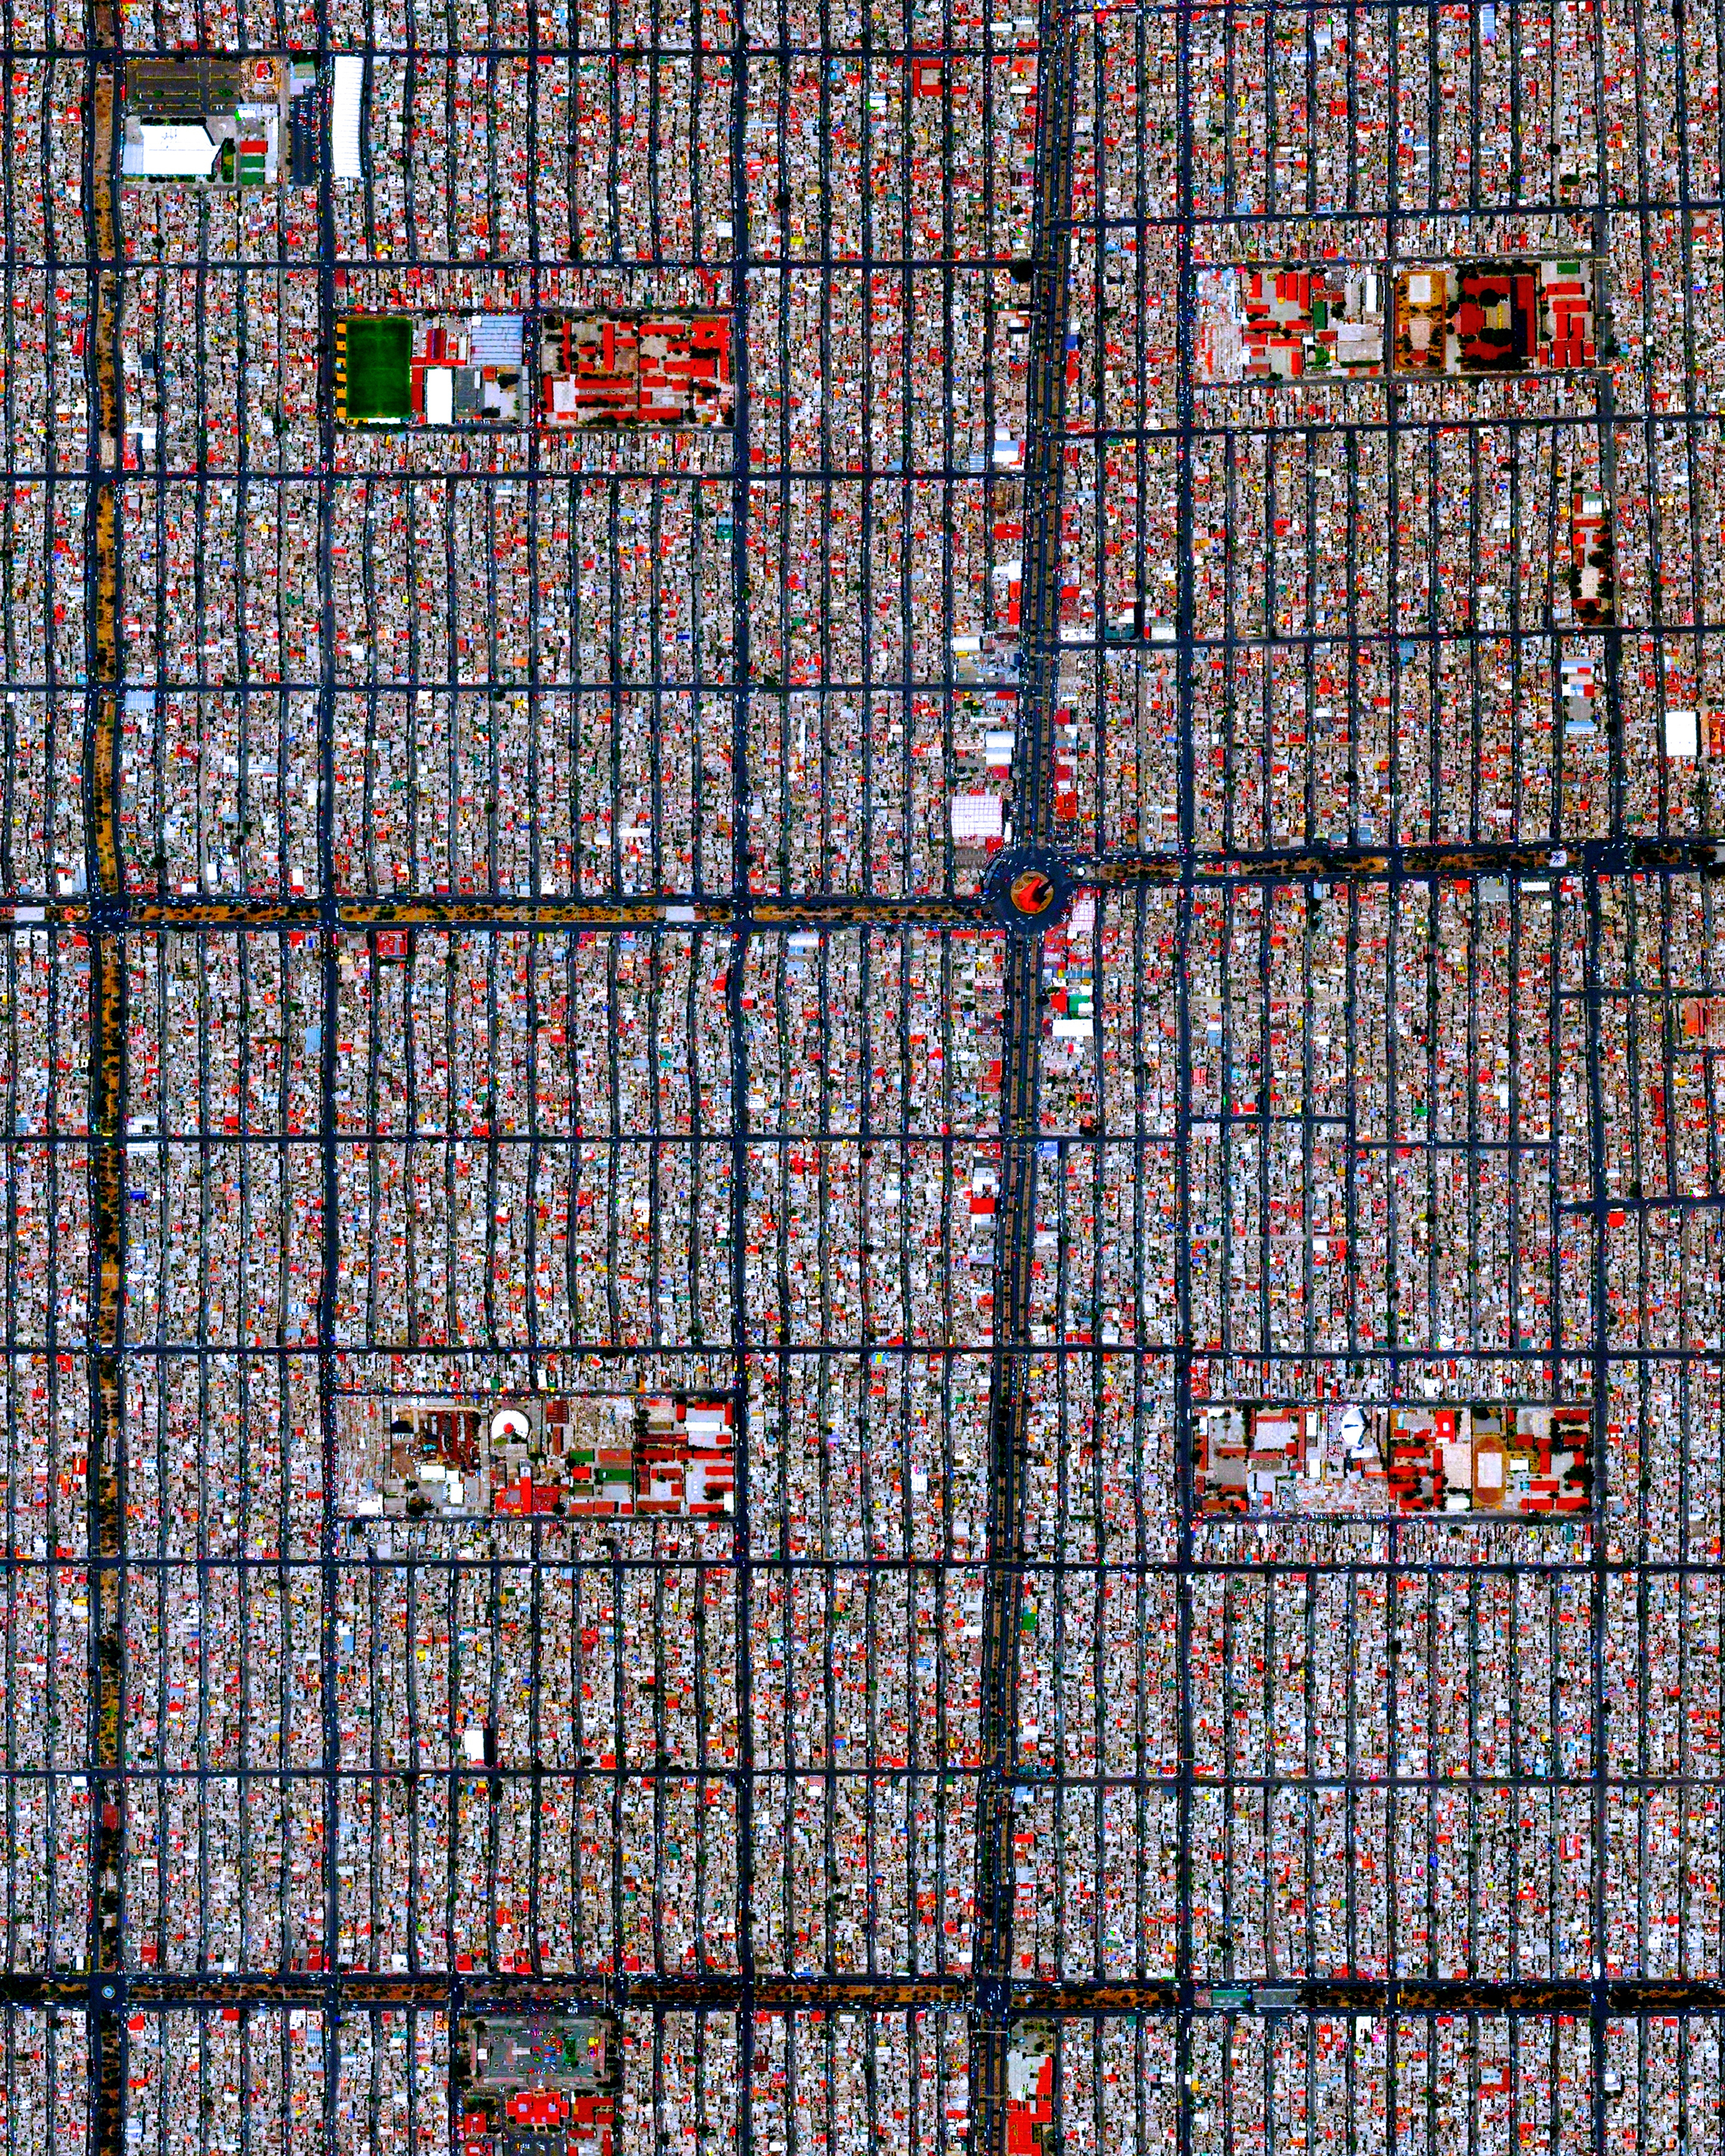 "This Overview captures the tightly gridded streets of Nezahualcóyotl, a municipality of Mexico City. With a population of more than one million, this area is home to many of the capital's citizens who have migrated there from other parts of the country. The Greater Mexico City area has roughly 21 million residents, making it the largest metropolitan area in North America.  19°24'26.8""N, 99°01'40.2""W  Source imagery: DigitalGlobe"